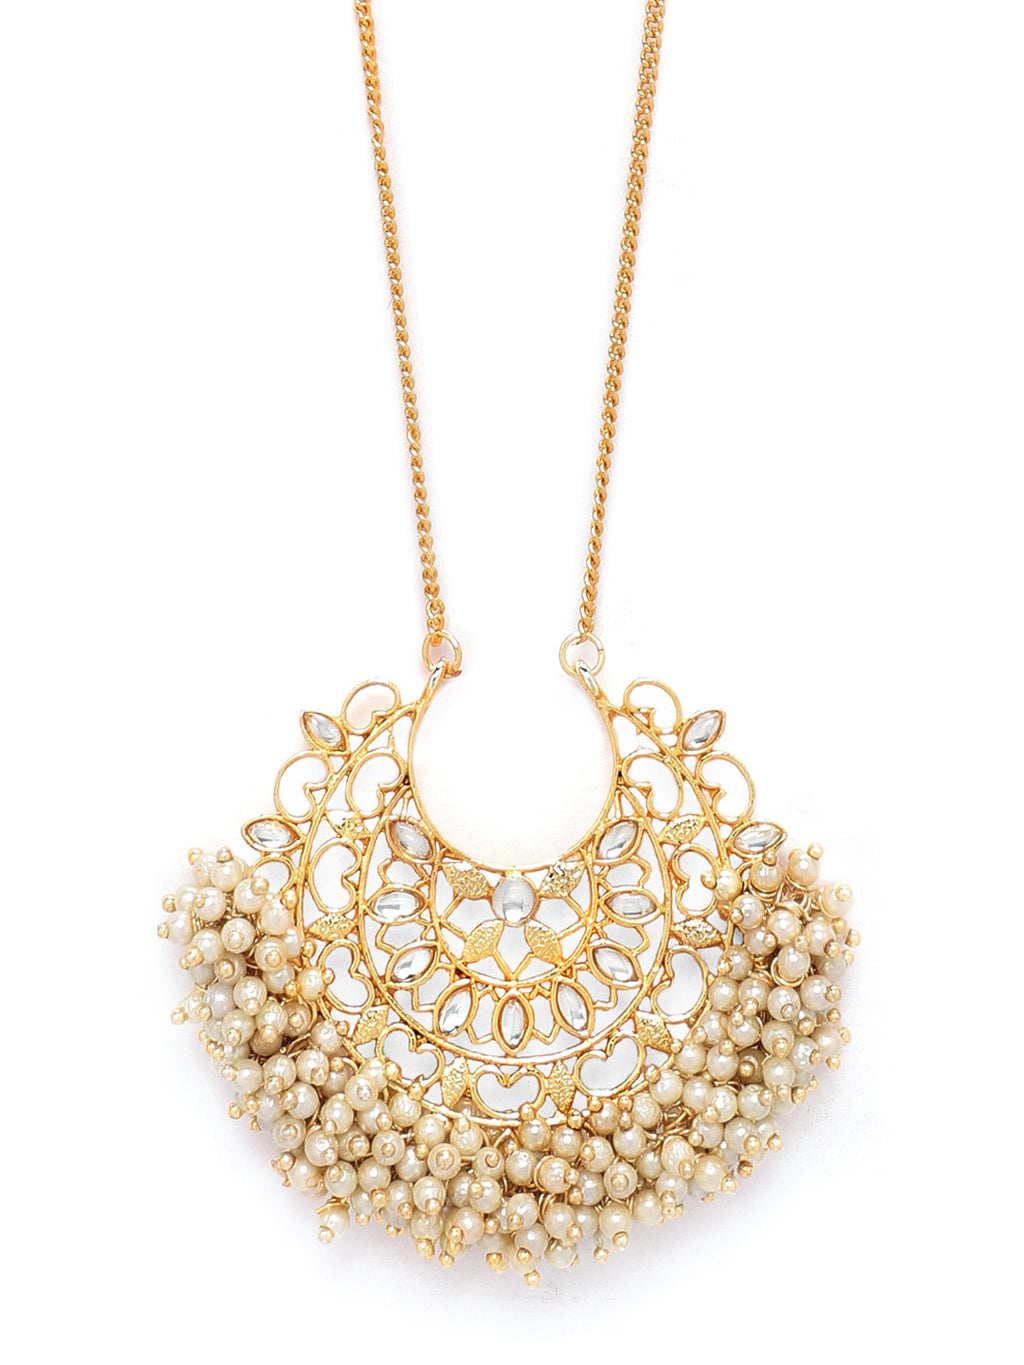 GOLD PLATED HAND CRAFTED STUDDED PEARL EMBELLISHED NECKLACE